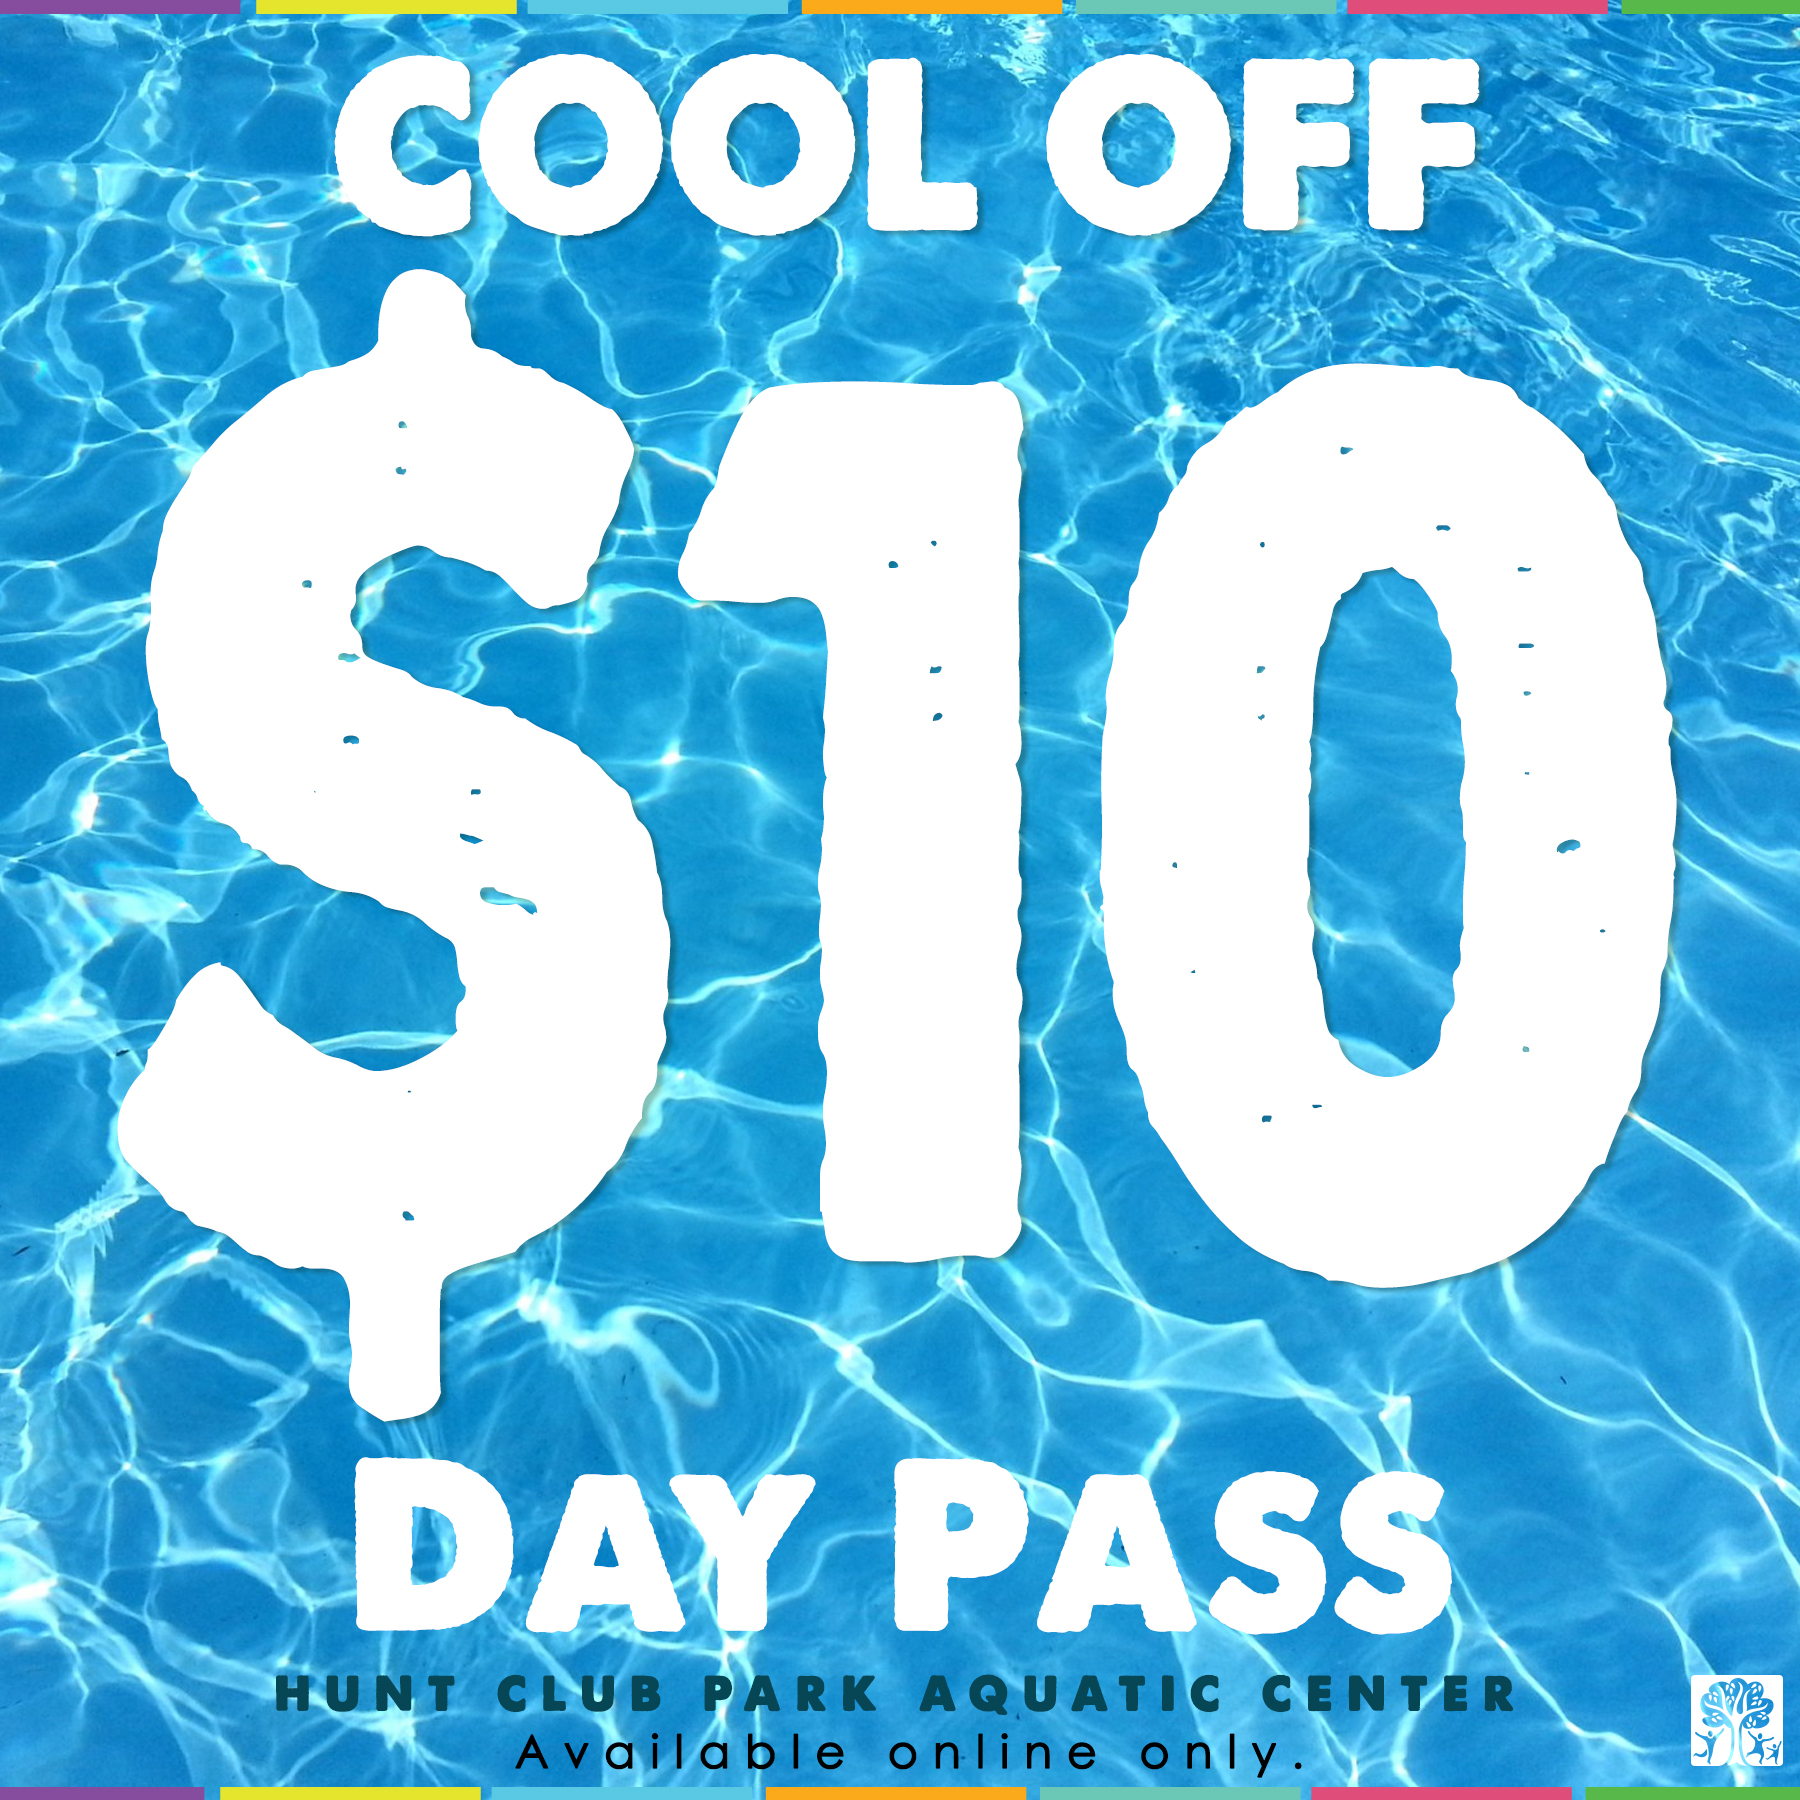 Aquatic Center online passes purchase today